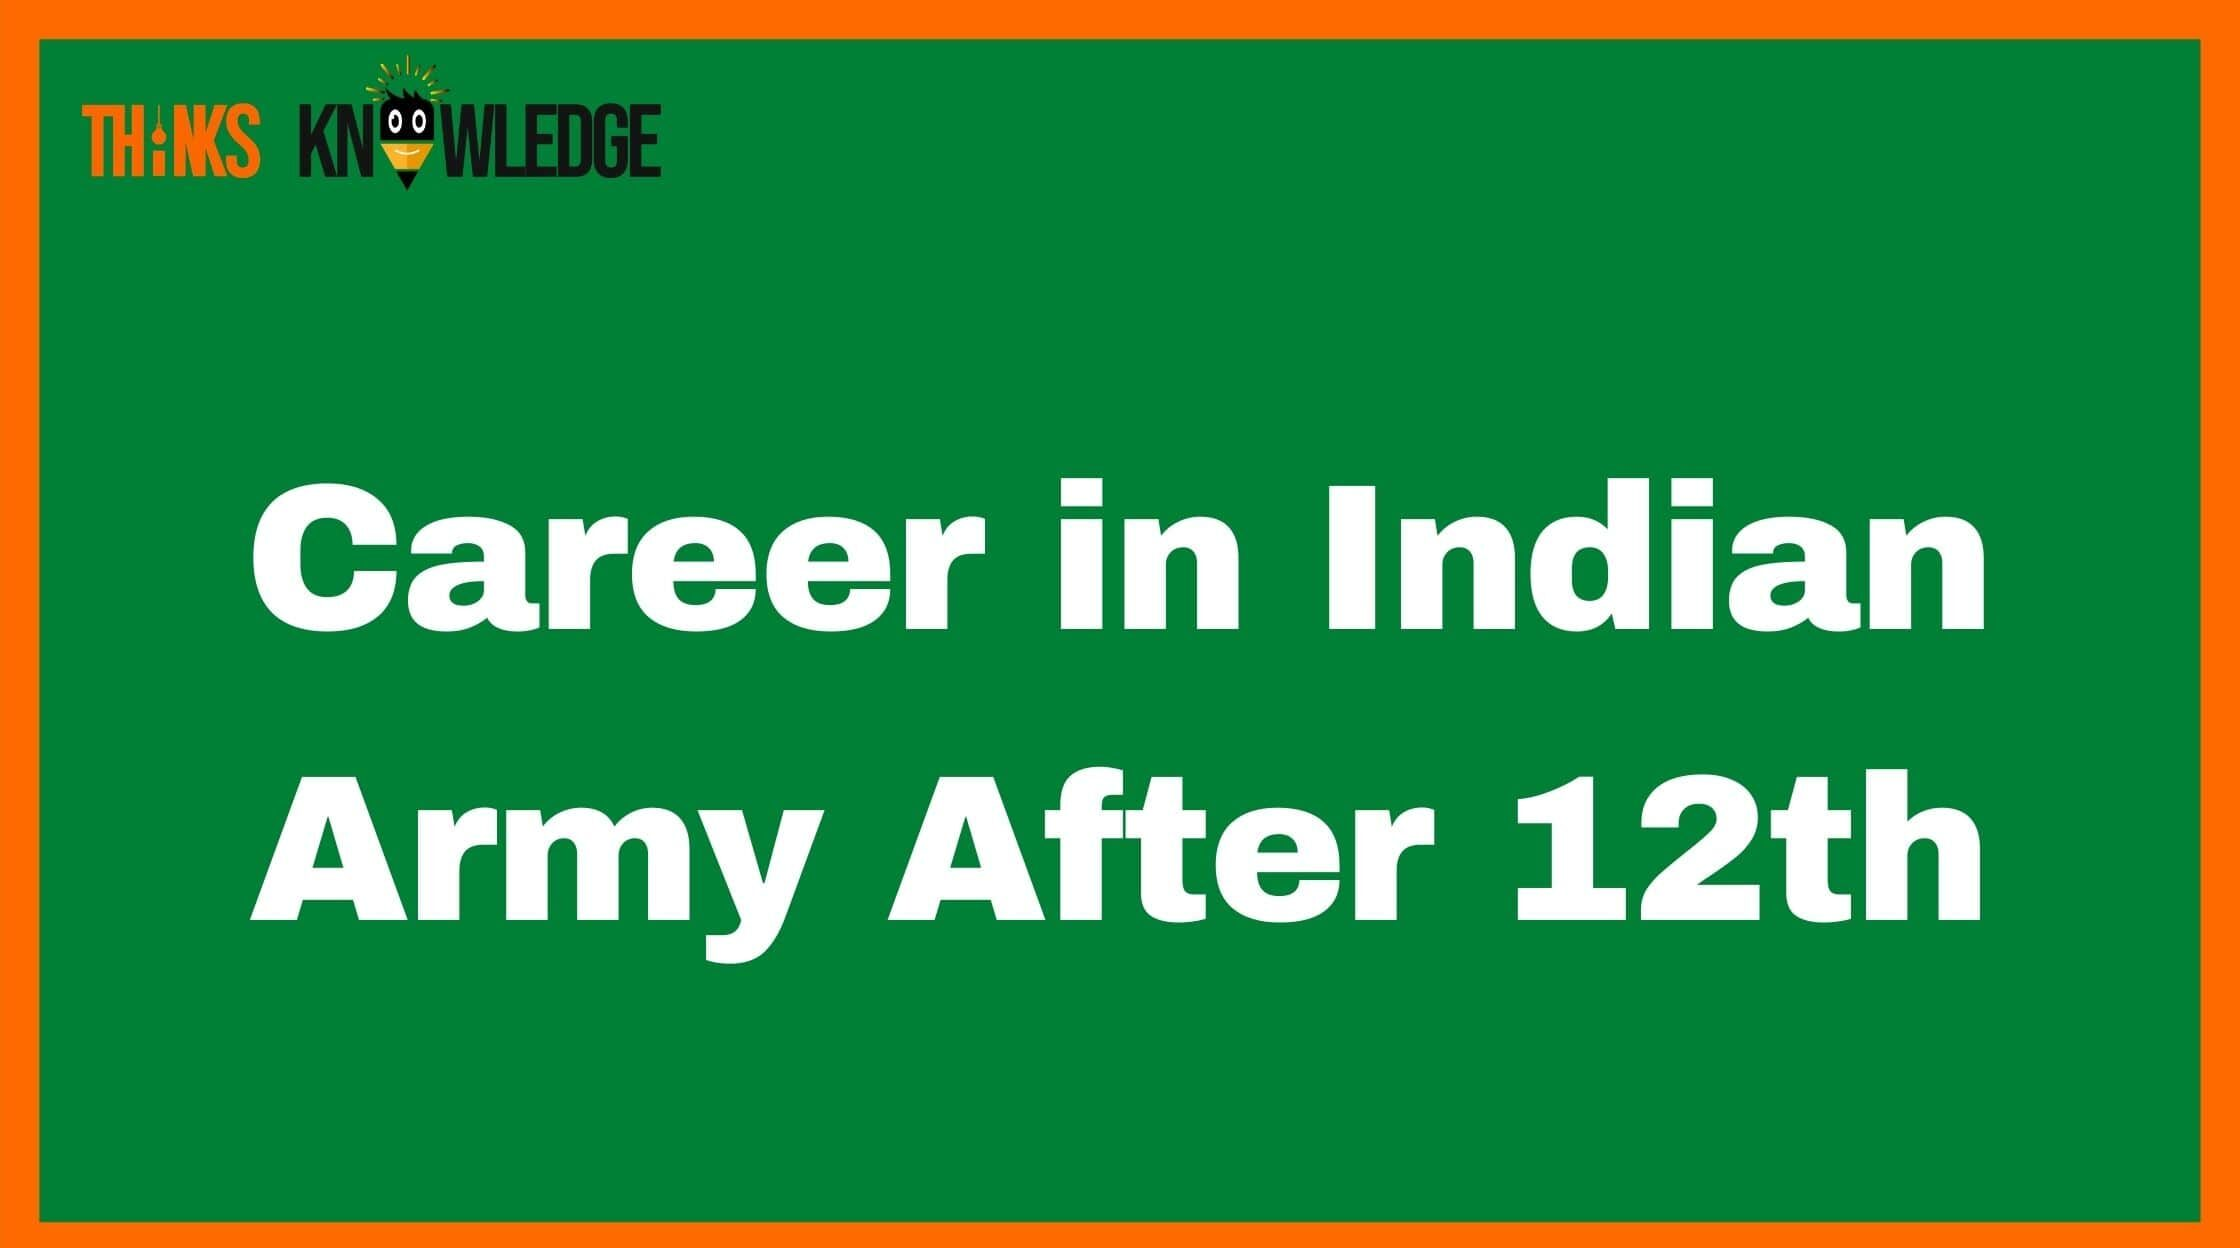 Indian Army After 12th